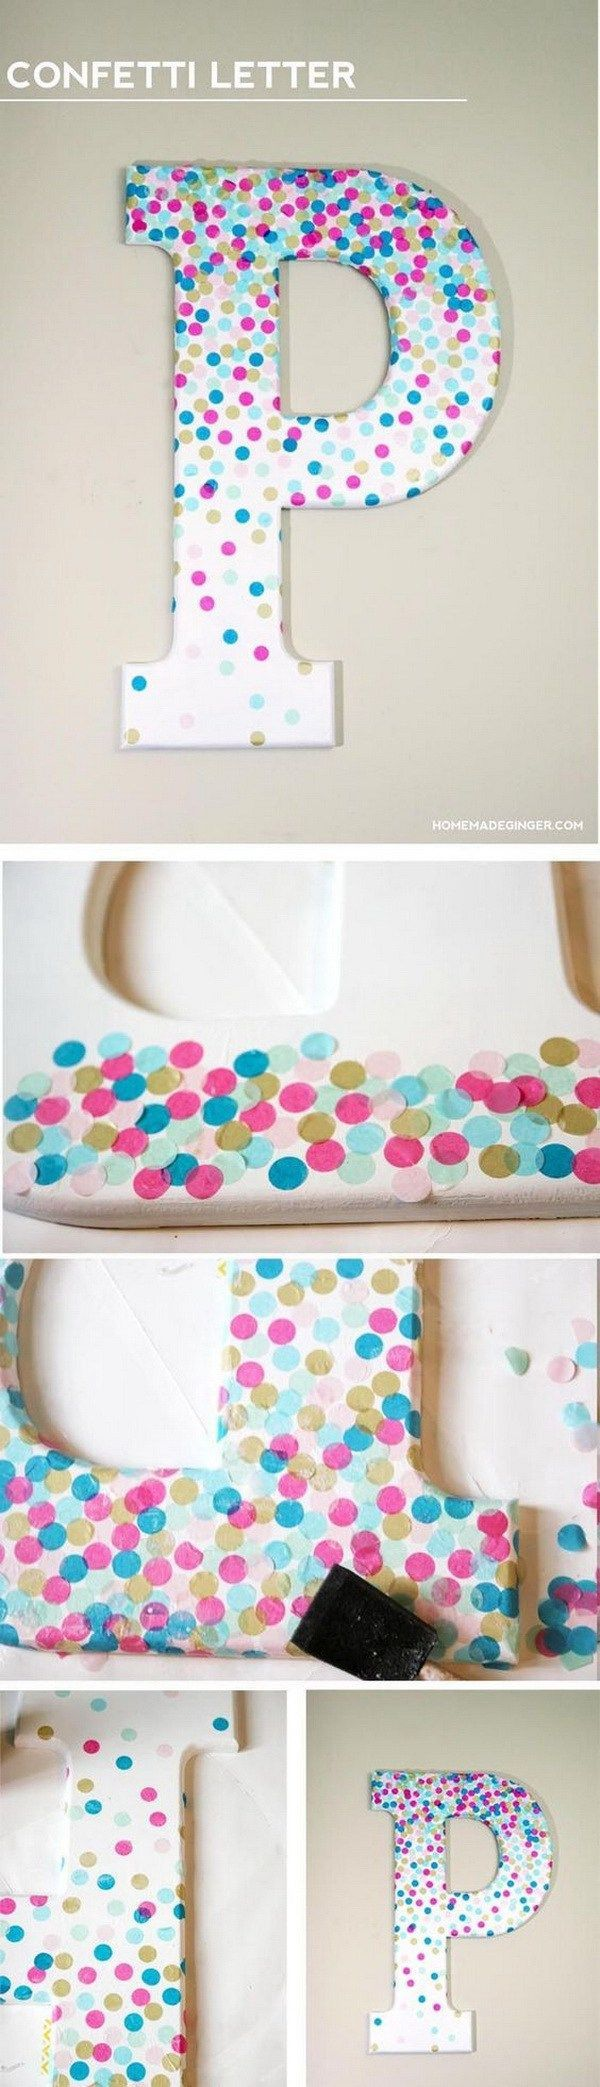 DIY Wall Art Confetti Letter. Decorate a large letter with tissue paper confetti. Great for a kids room too!